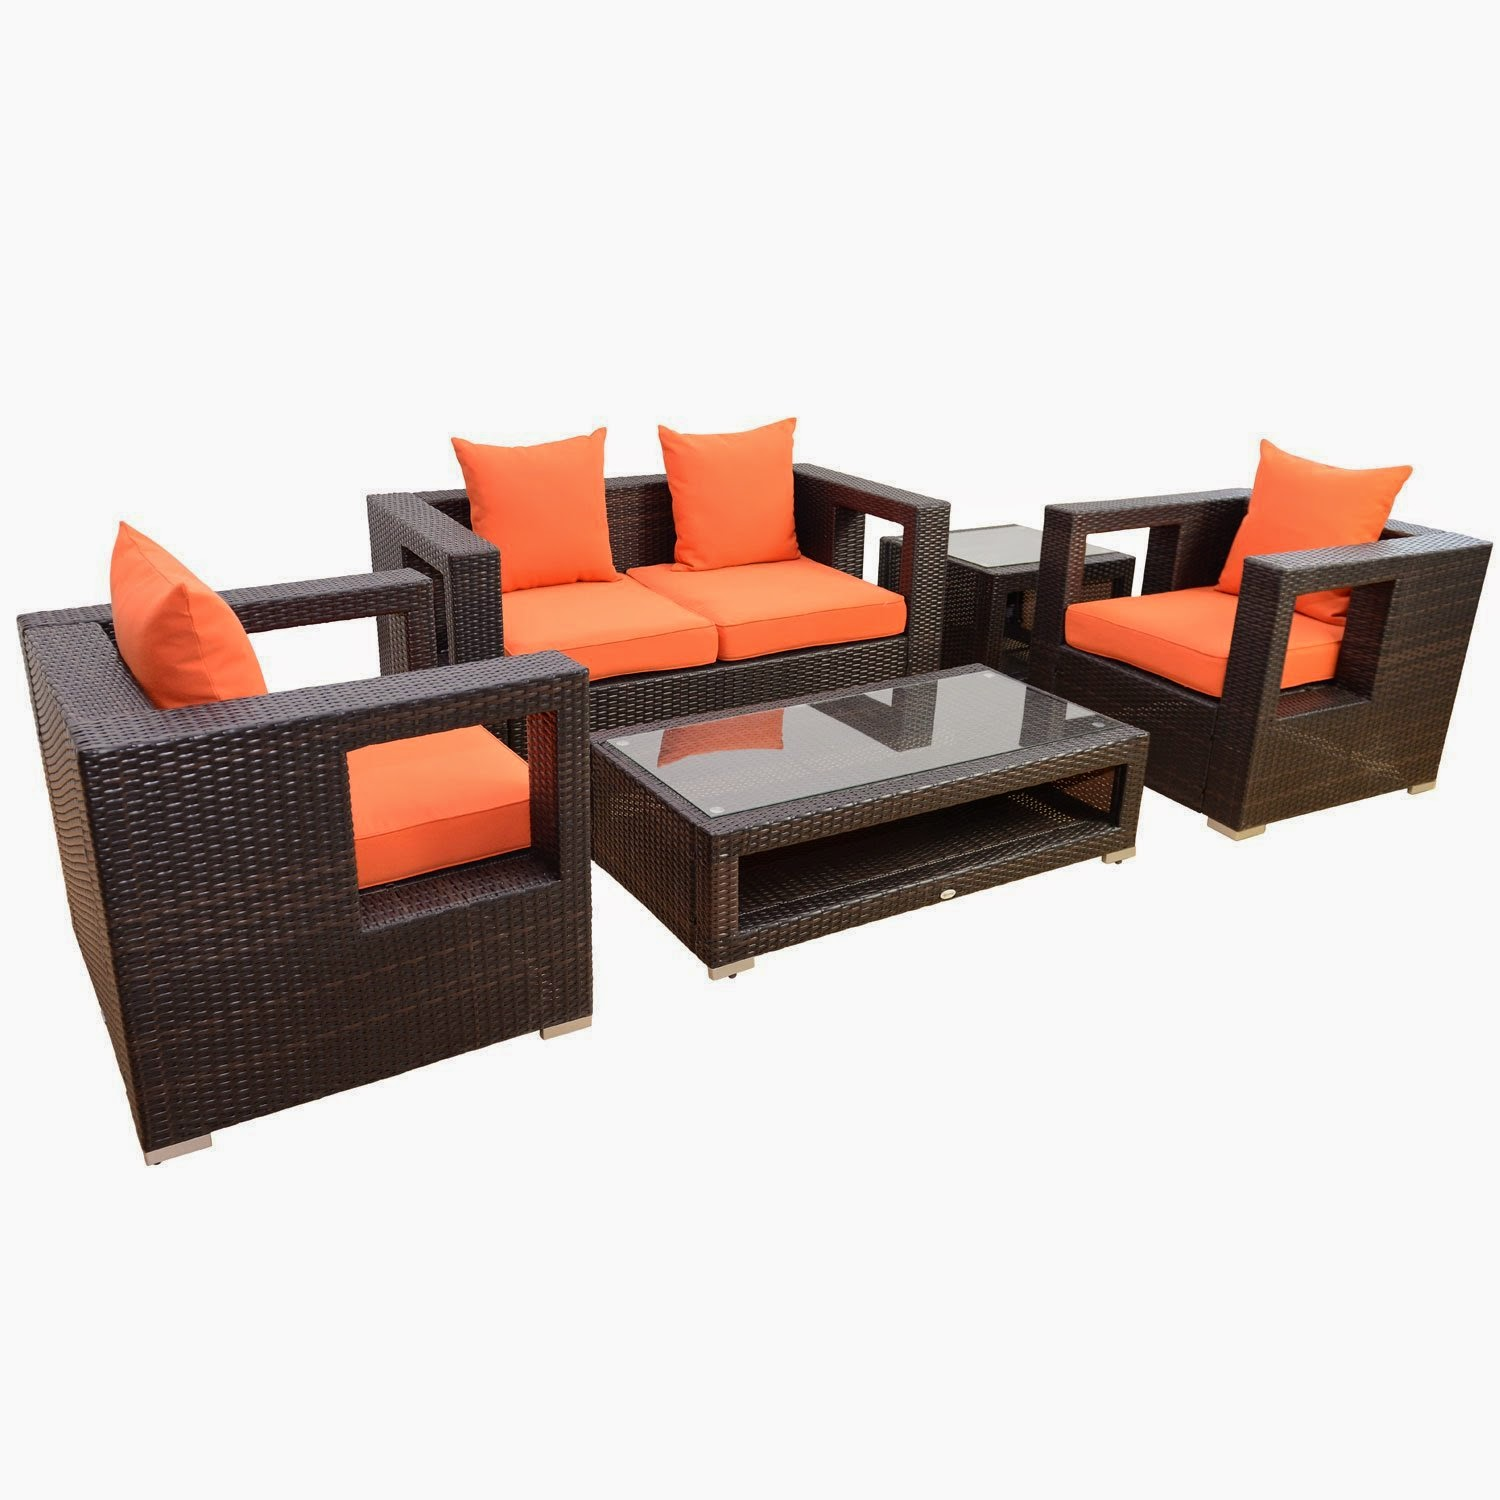 Outdoor Rattan Wicker Sofa Sectional Patio Furniture Set Club Los Angeles Ca 90064 Get Discount Outsunny 5pc Pe